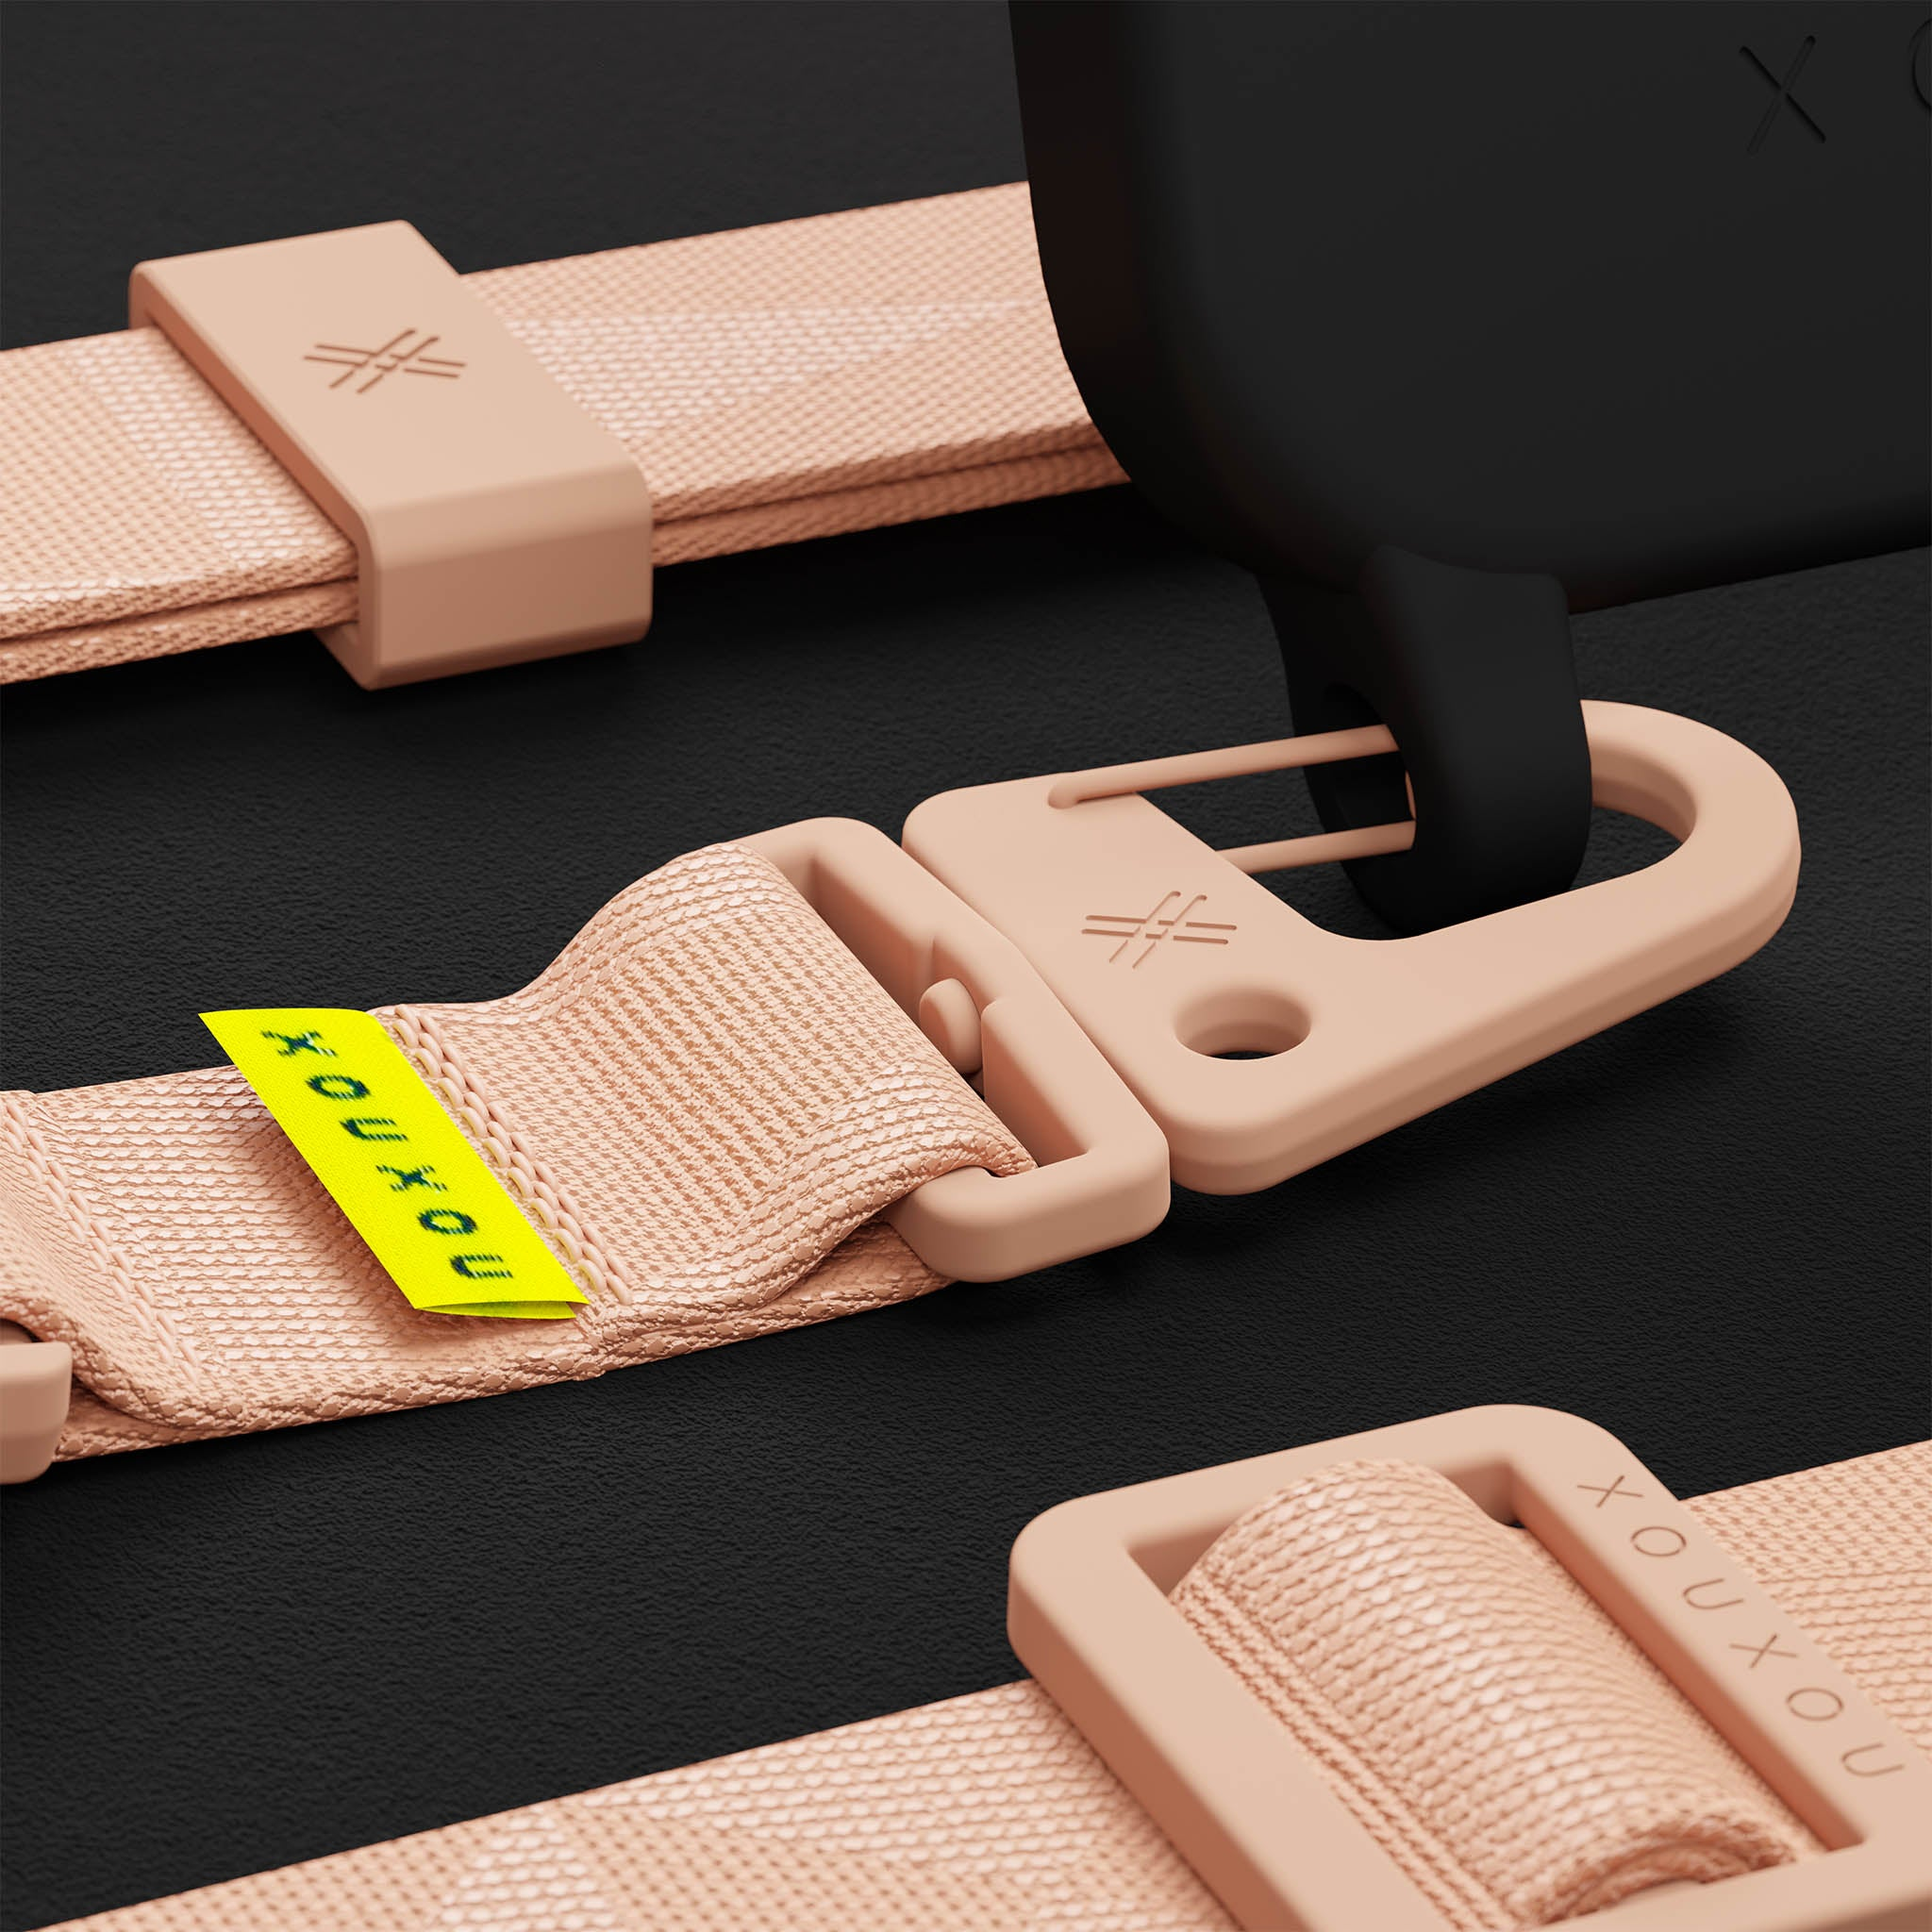 Black Silicone Case + Powder Pink Lanyard